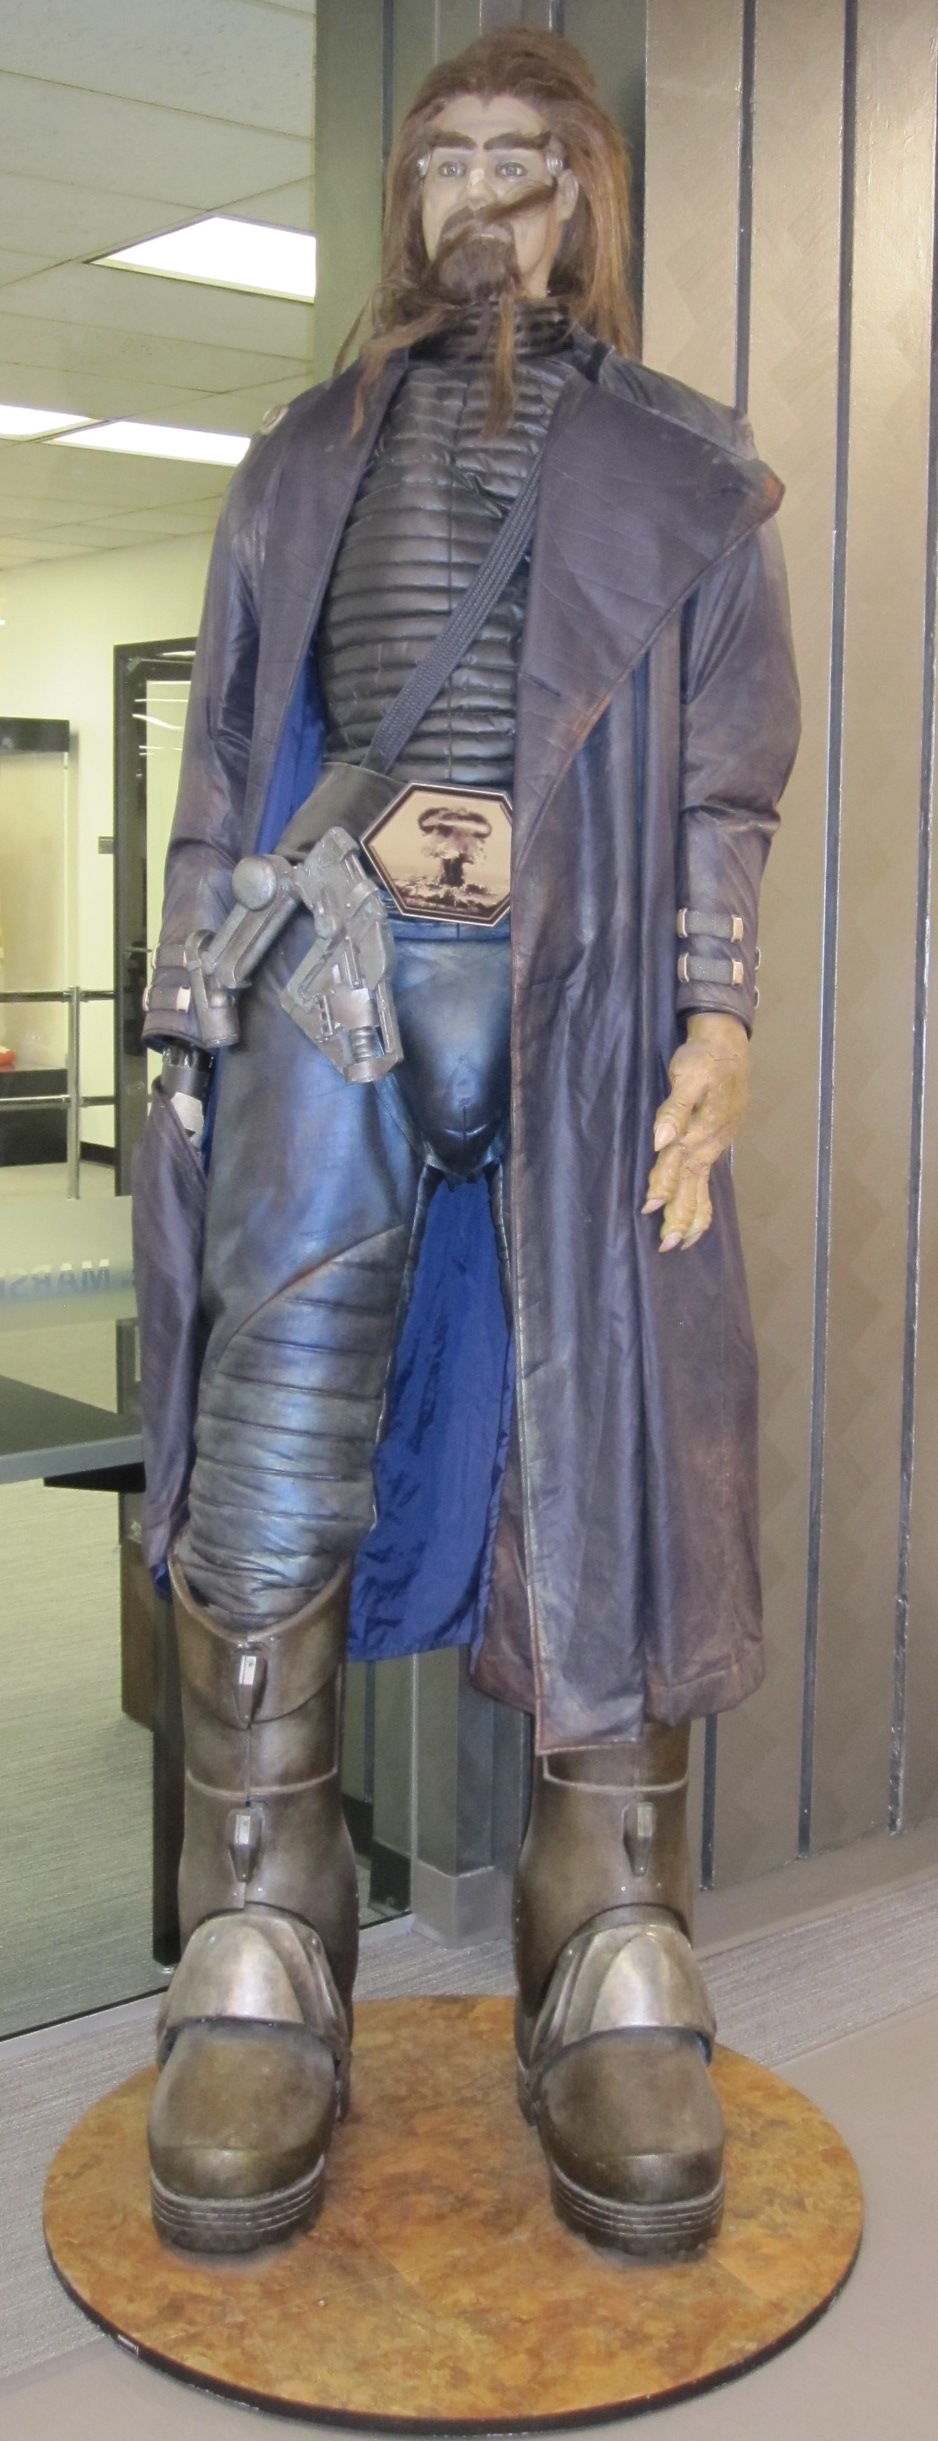 Image 3: John Travolta's costume as Terl in Battlefield Earth (2000). Edward E. Marsh Golden Age of Science Fiction Collection, SDSU.